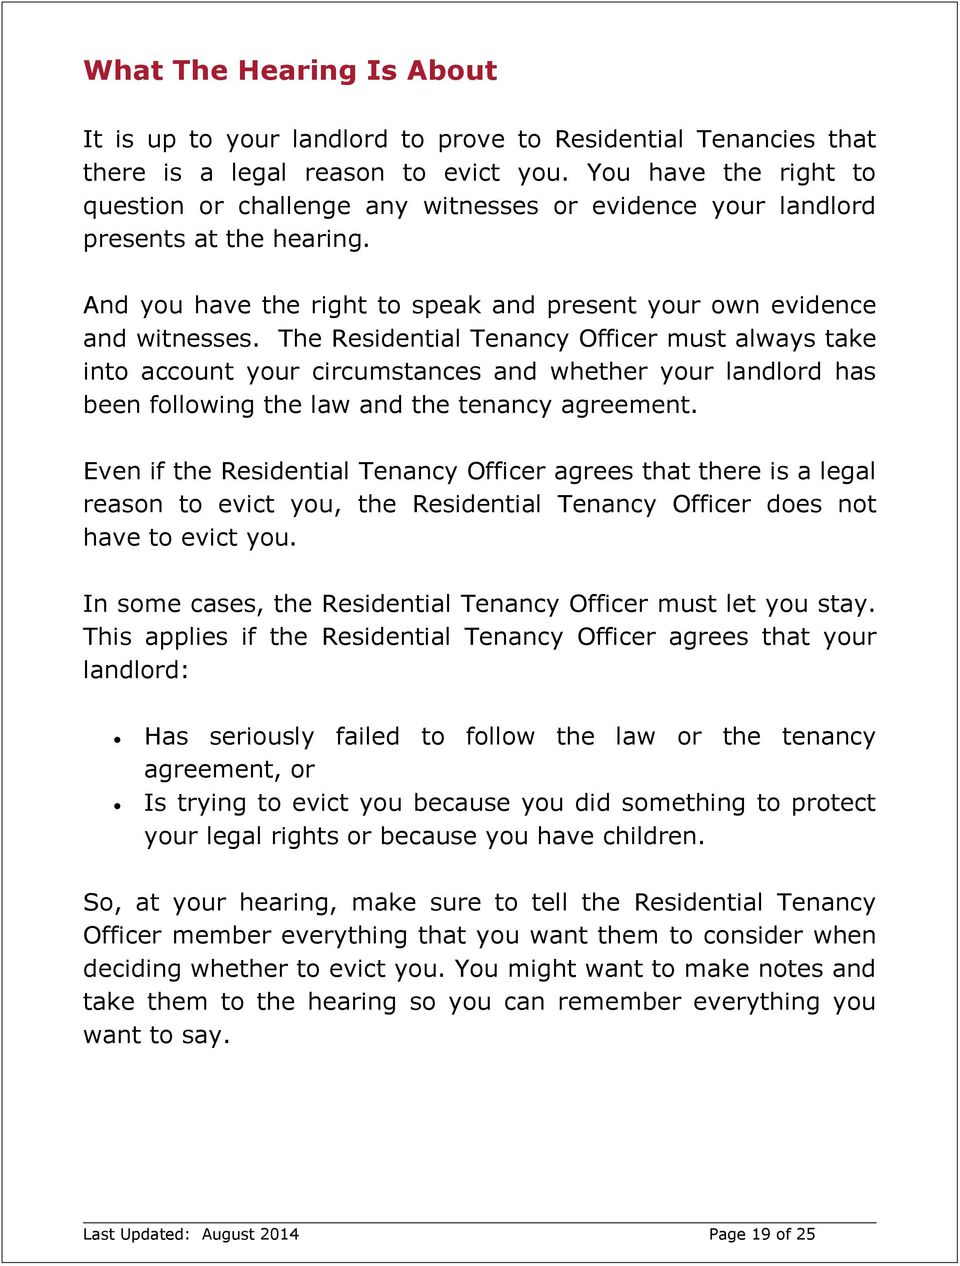 The Residential Tenancy Officer must always take into account your circumstances and whether your landlord has been following the law and the tenancy agreement.